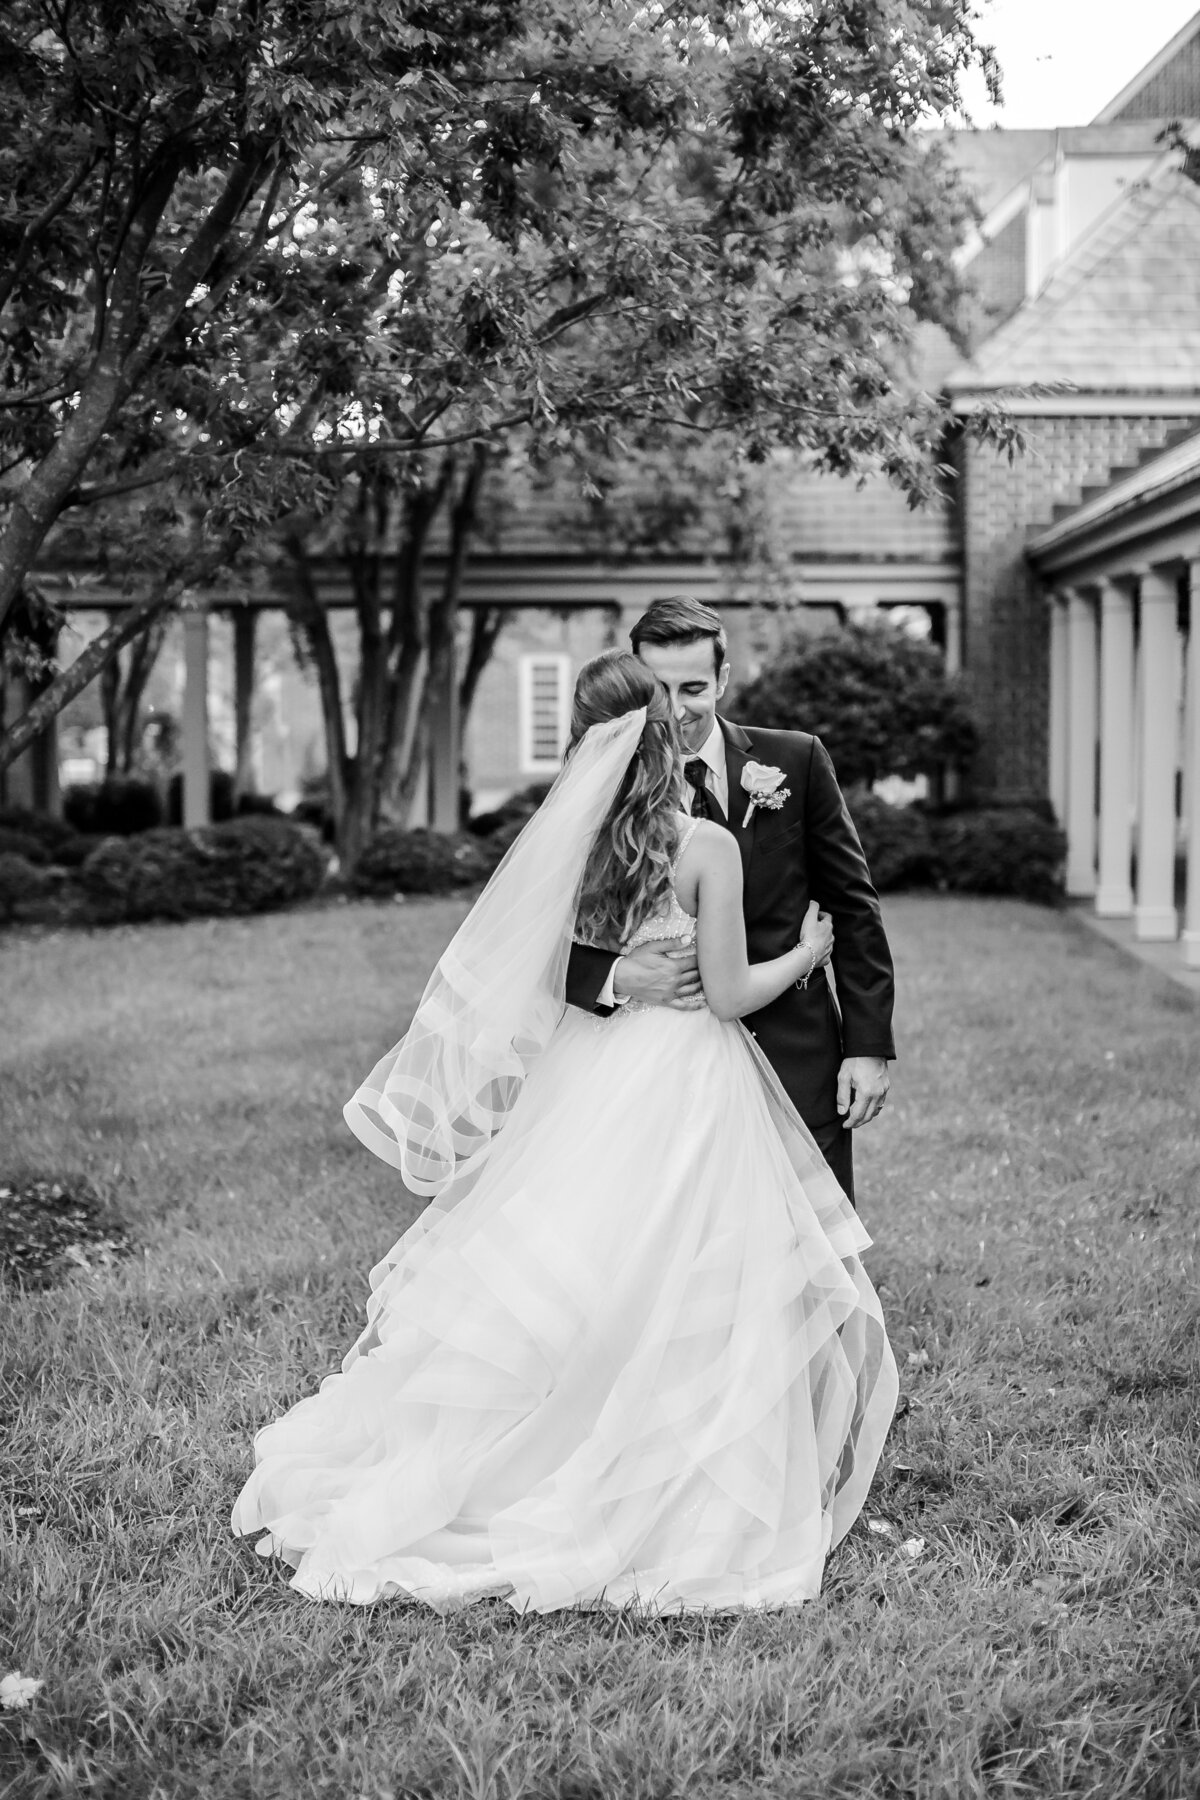 meghan lupyan hampton roads wedding photographer188